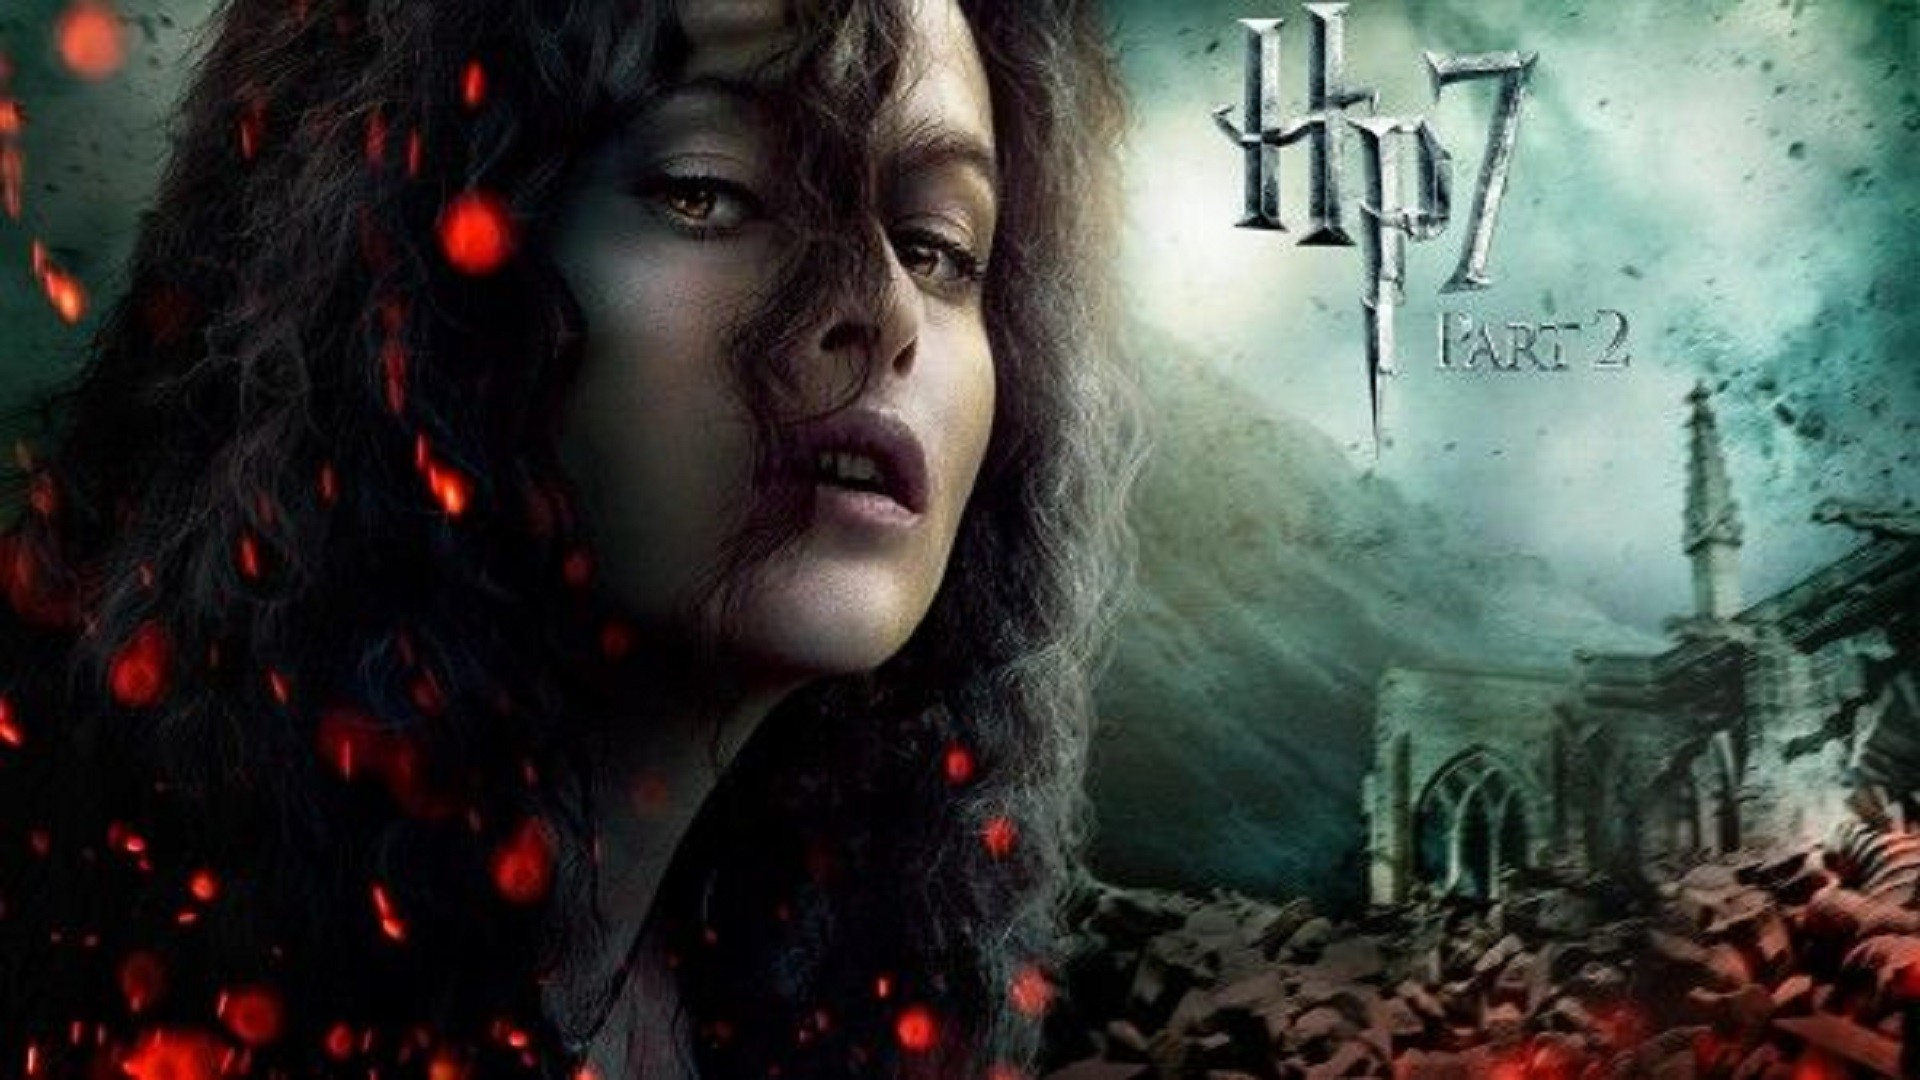 … hd free wallpapers harry potter free download …